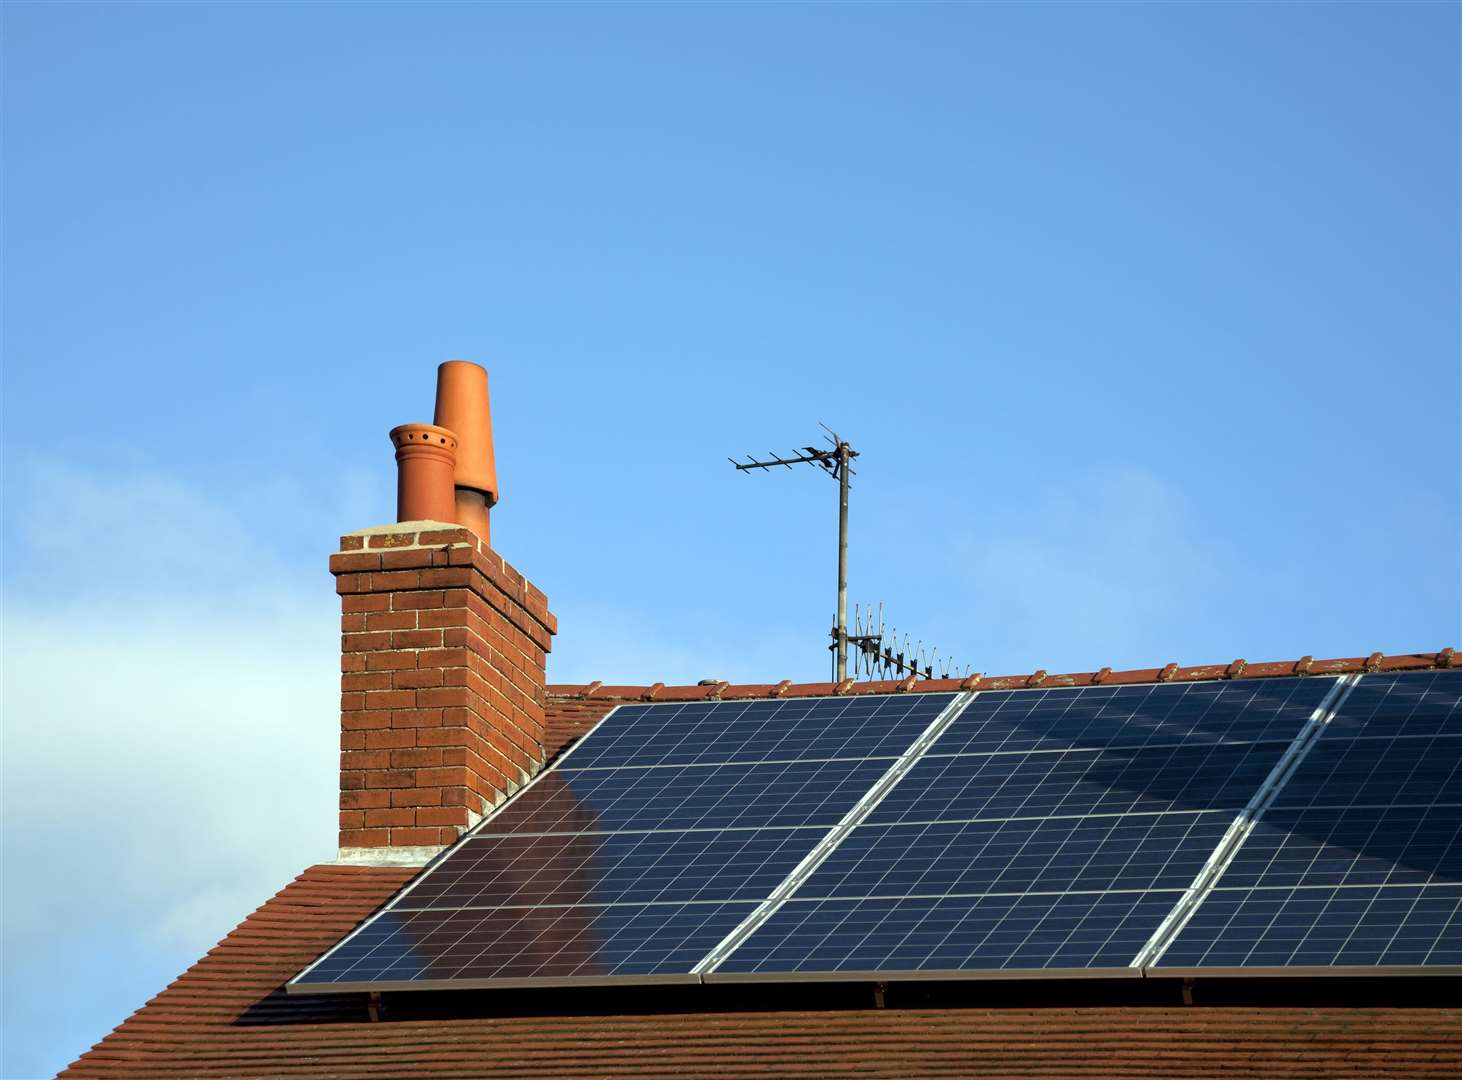 Louise is regularly asked why solar panels are not on all of the new homes being built in Bishop's Stortford